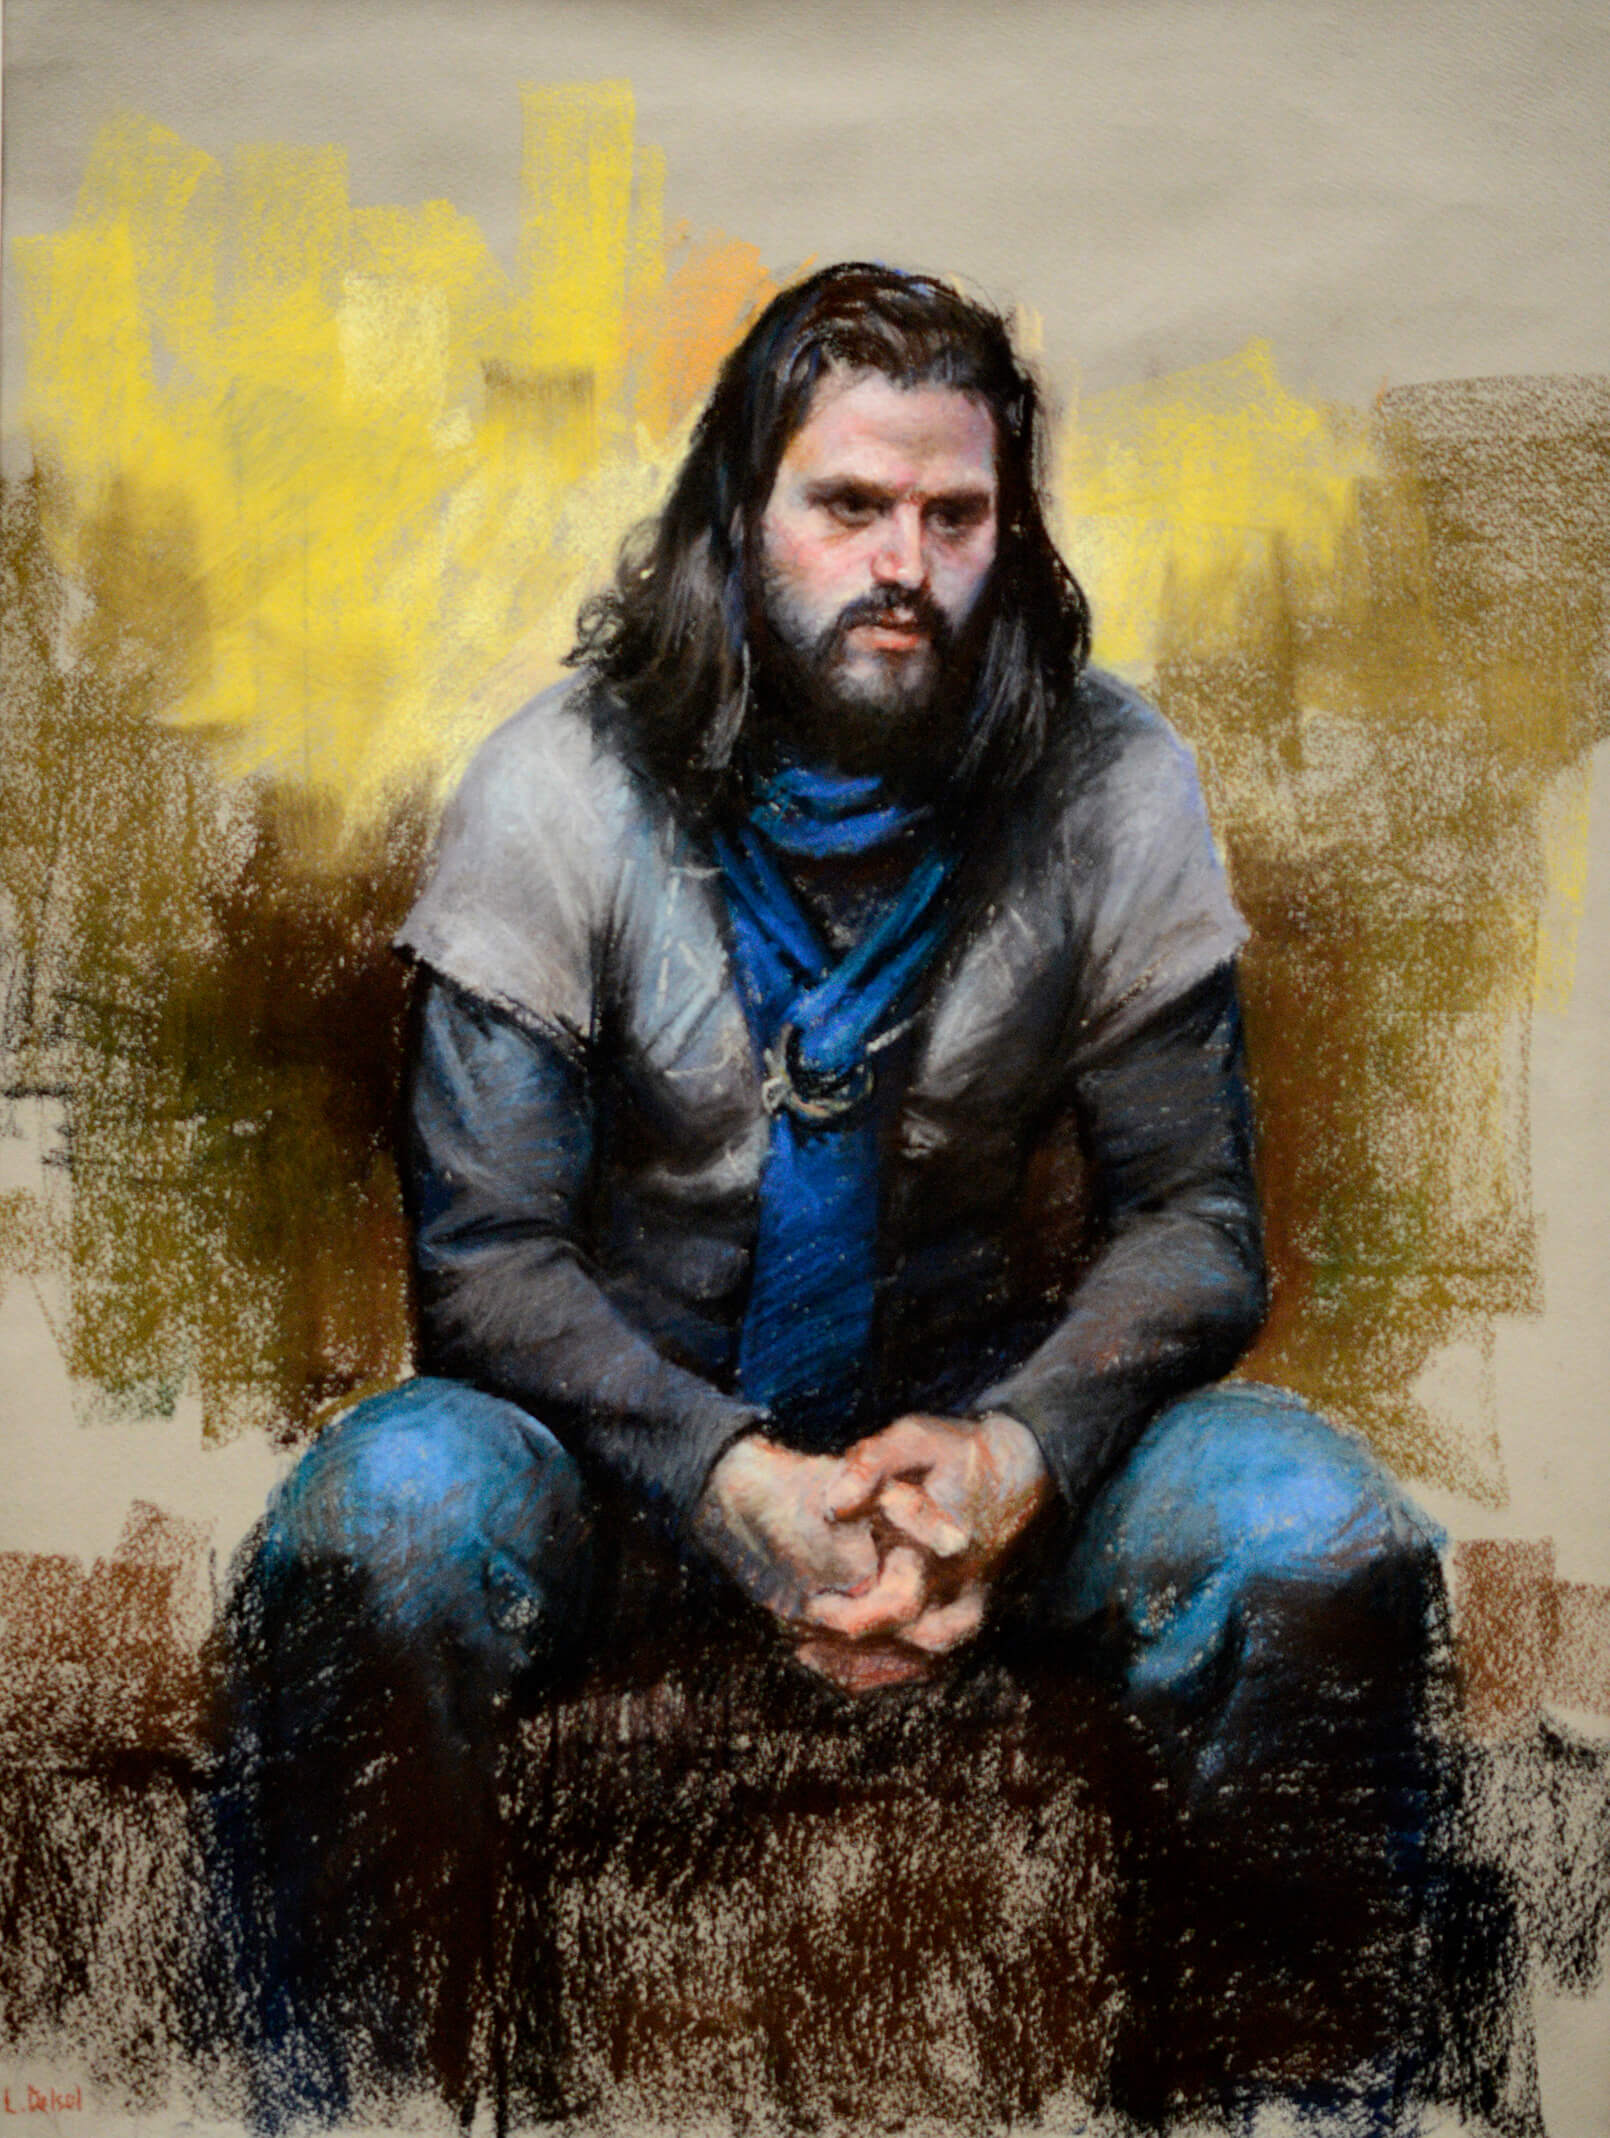 Pastel painting of a 30 something man with long brown hair, mustache and beard siting with his hands clasmped and a contemplative look. He is wearing a gray shirt with a blue scarf secured with an antique clasp. The blues in his clothing is balanced by energetic application of yellow in the background.